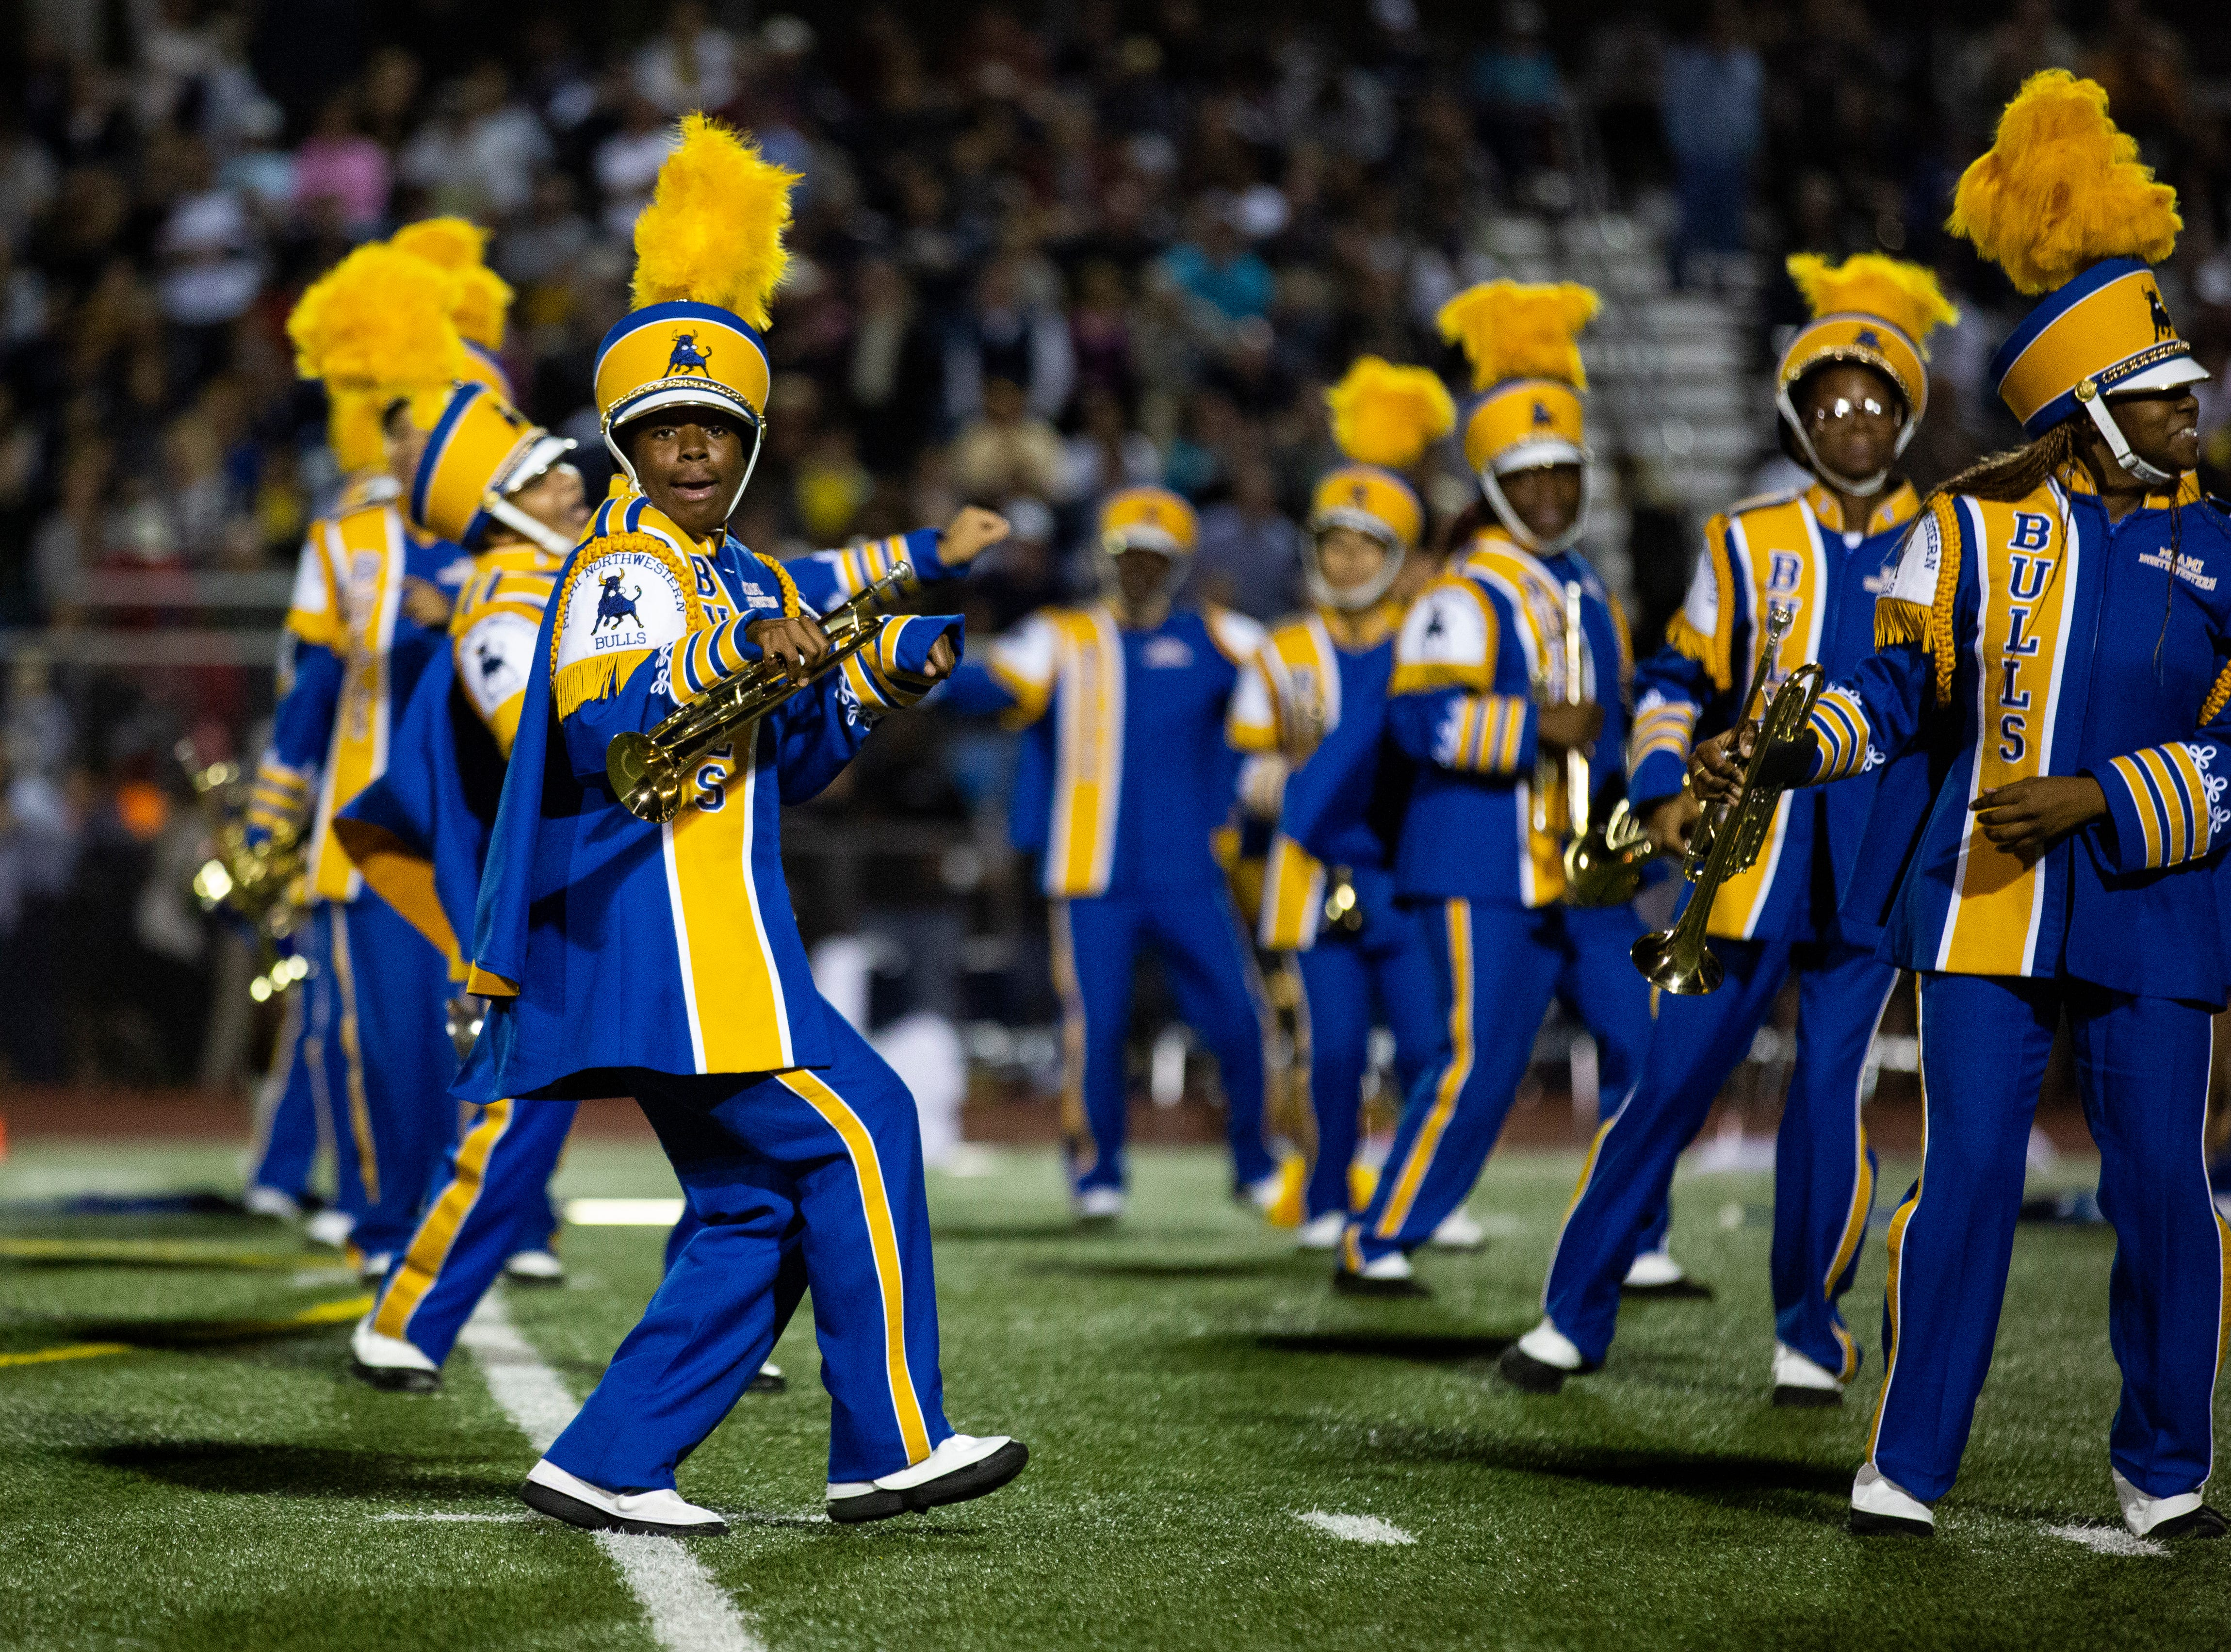 The Miami Northwestern Senior High marching band performs during the halftime at the Class 6A state semifinals game on Friday, November 30, 2018, at Naples High School in Naples.